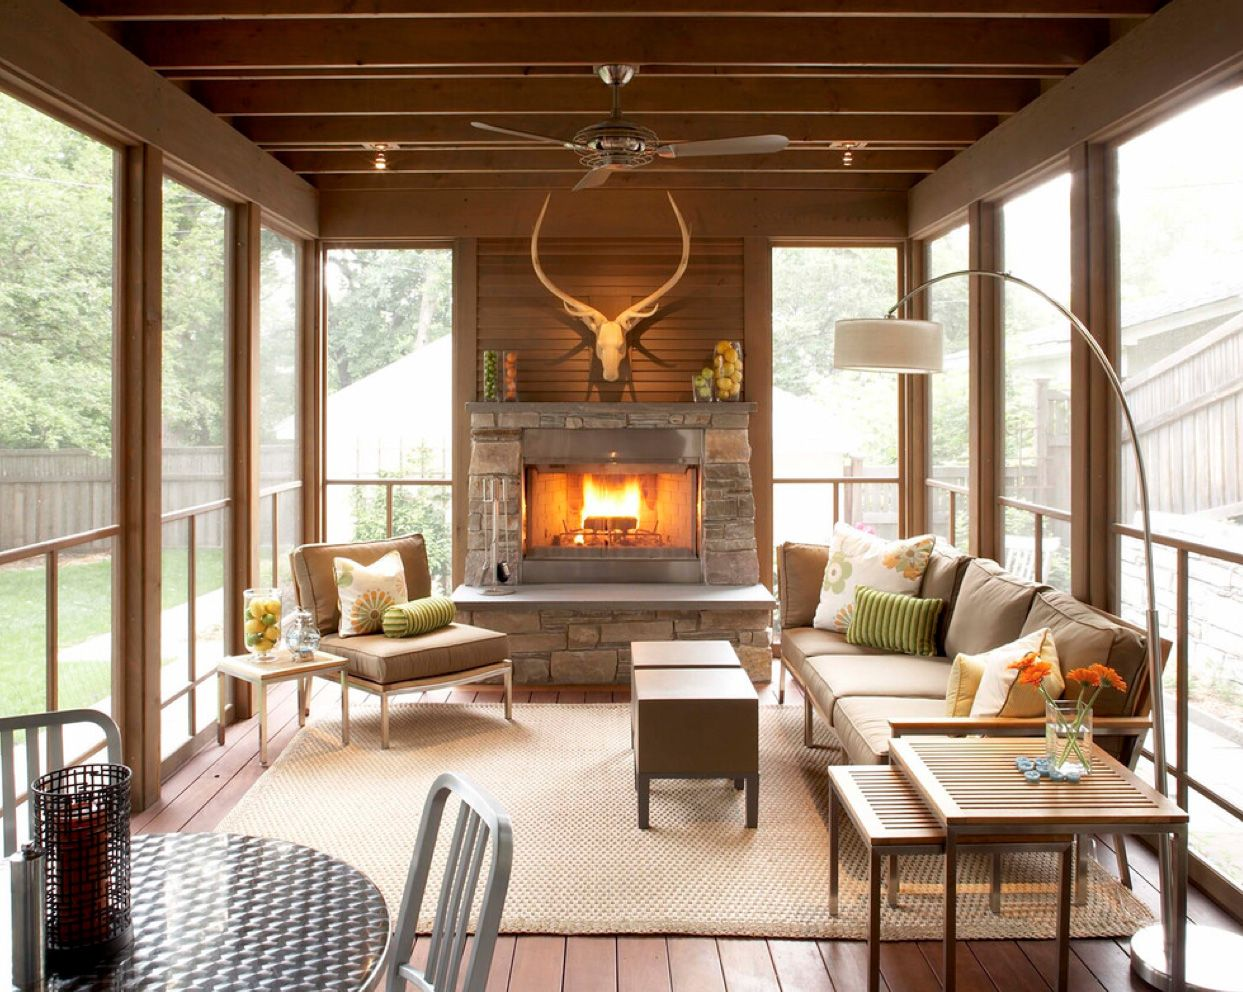 301 moved permanently for Screened in porch fireplace ideas